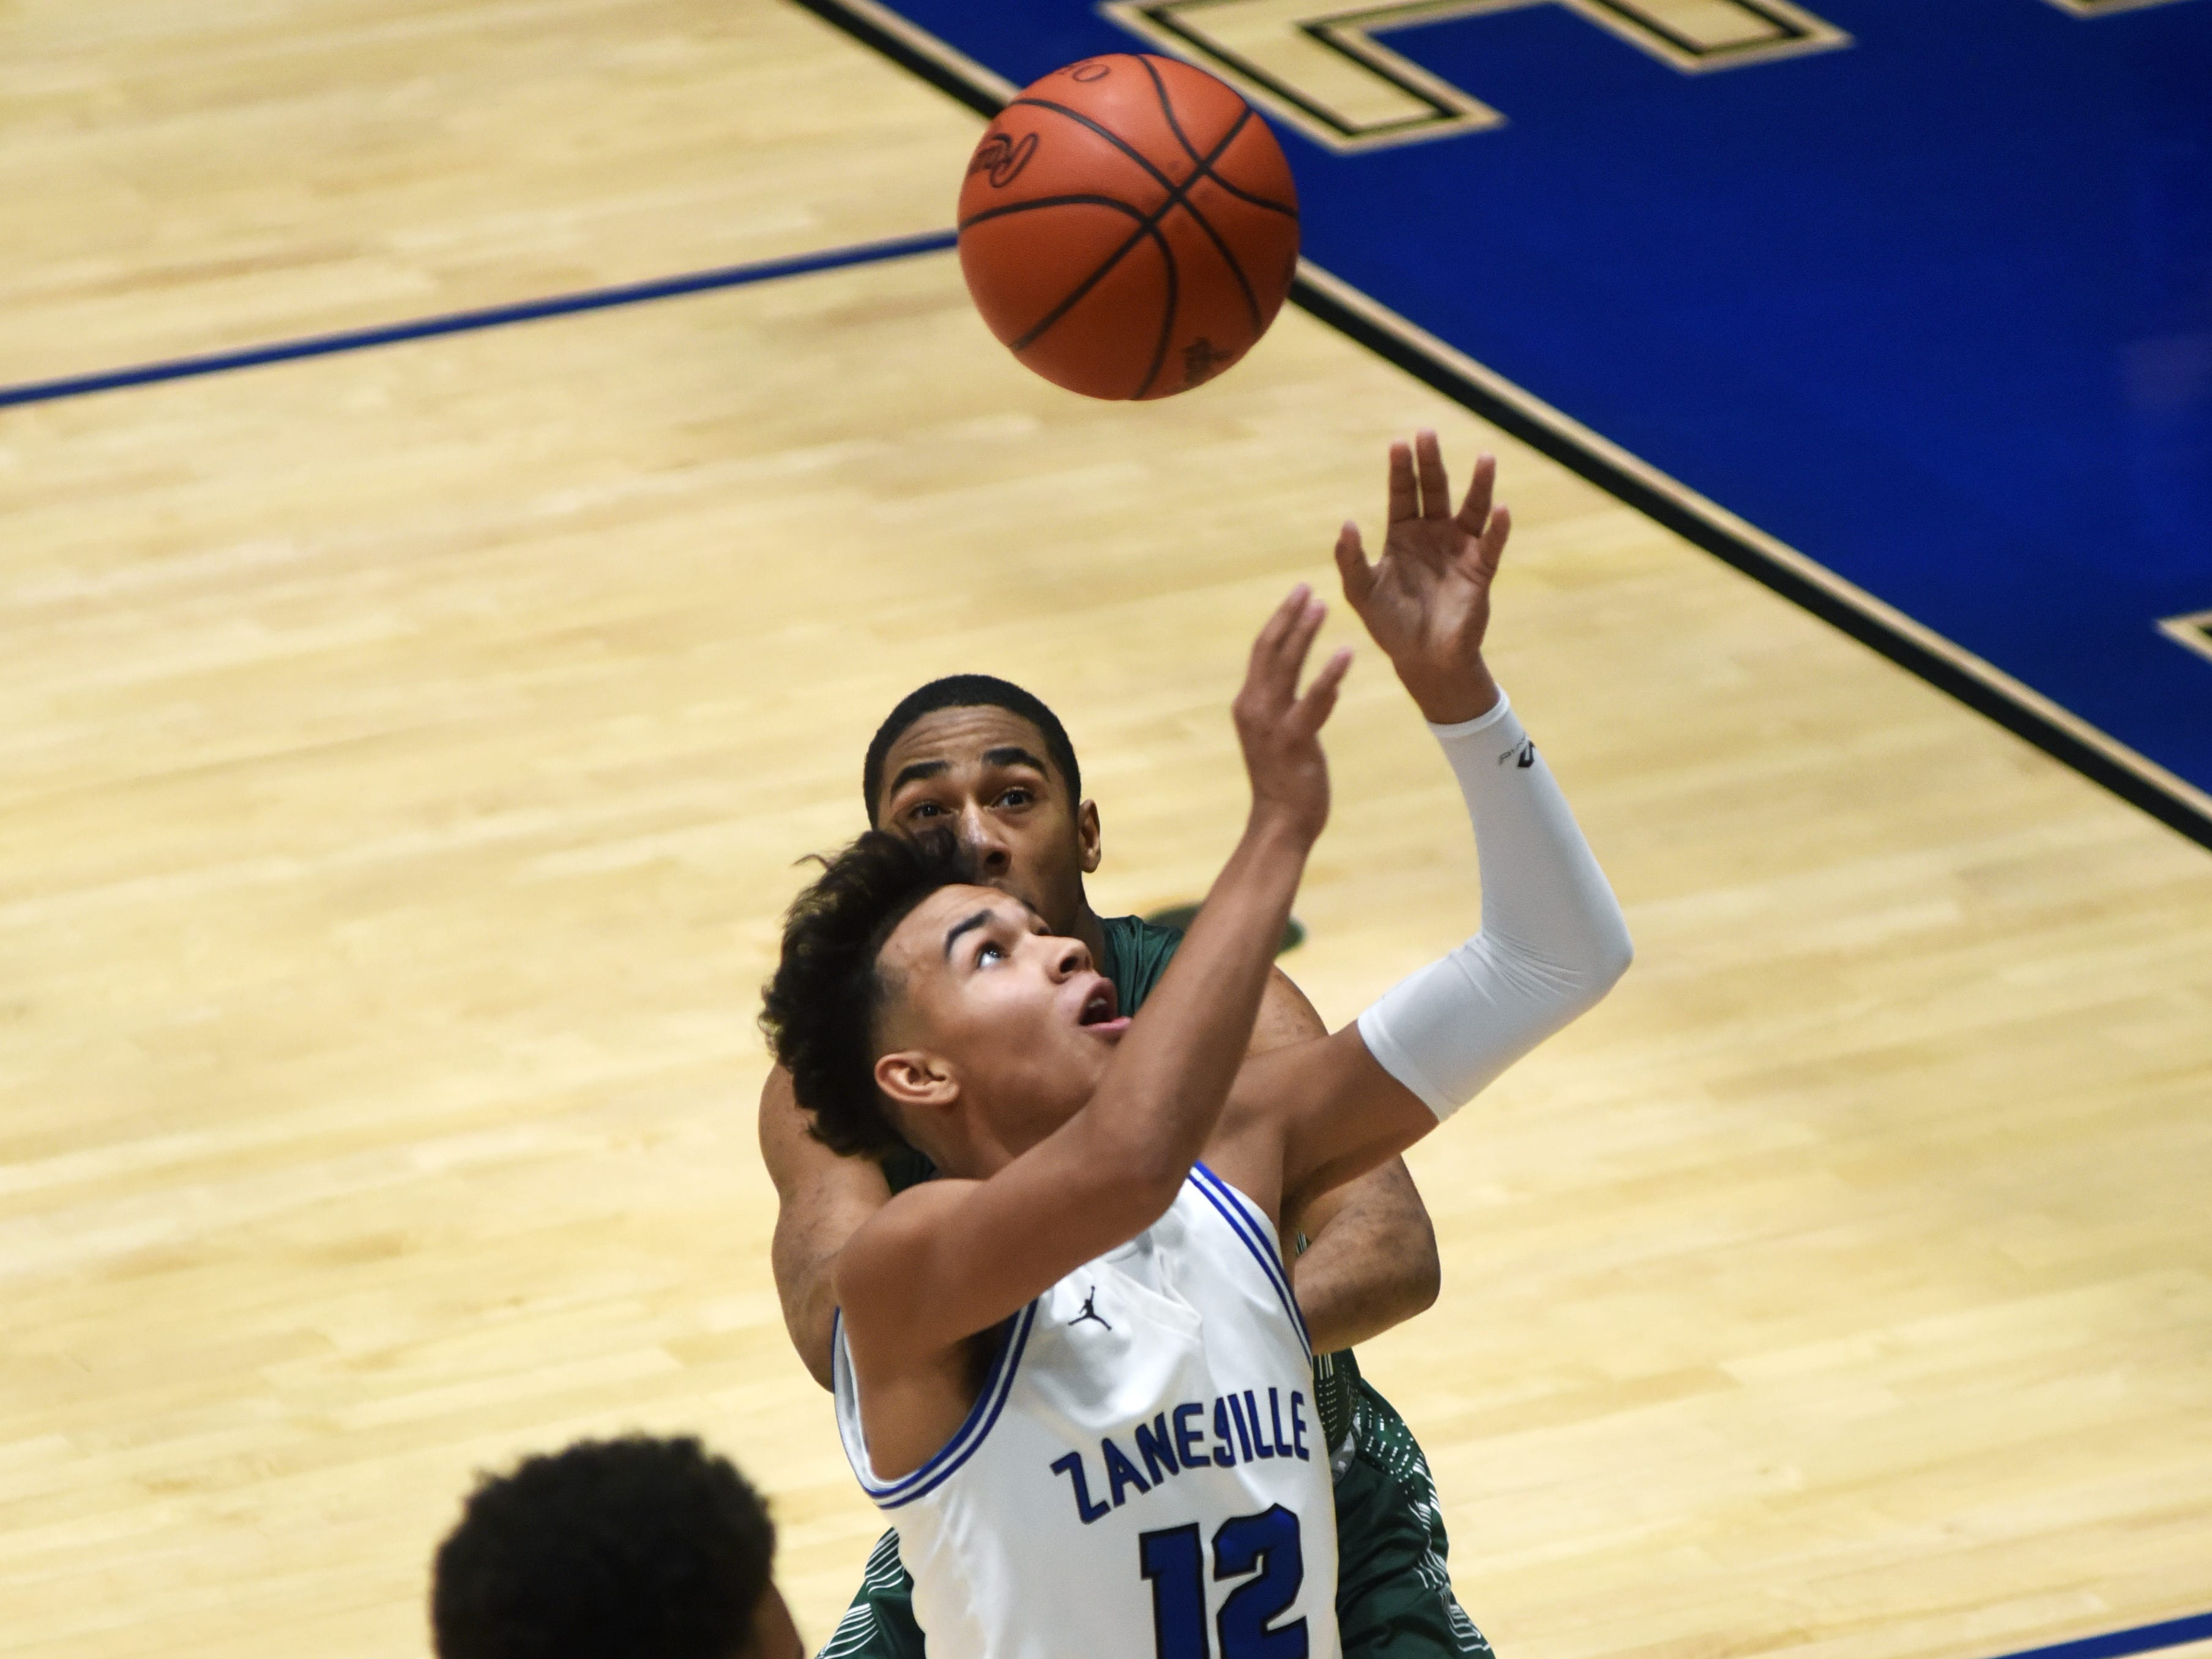 Cory Norris tries to corral a pass during Zanesville's 52-42 loss to Canton Central Catholic.